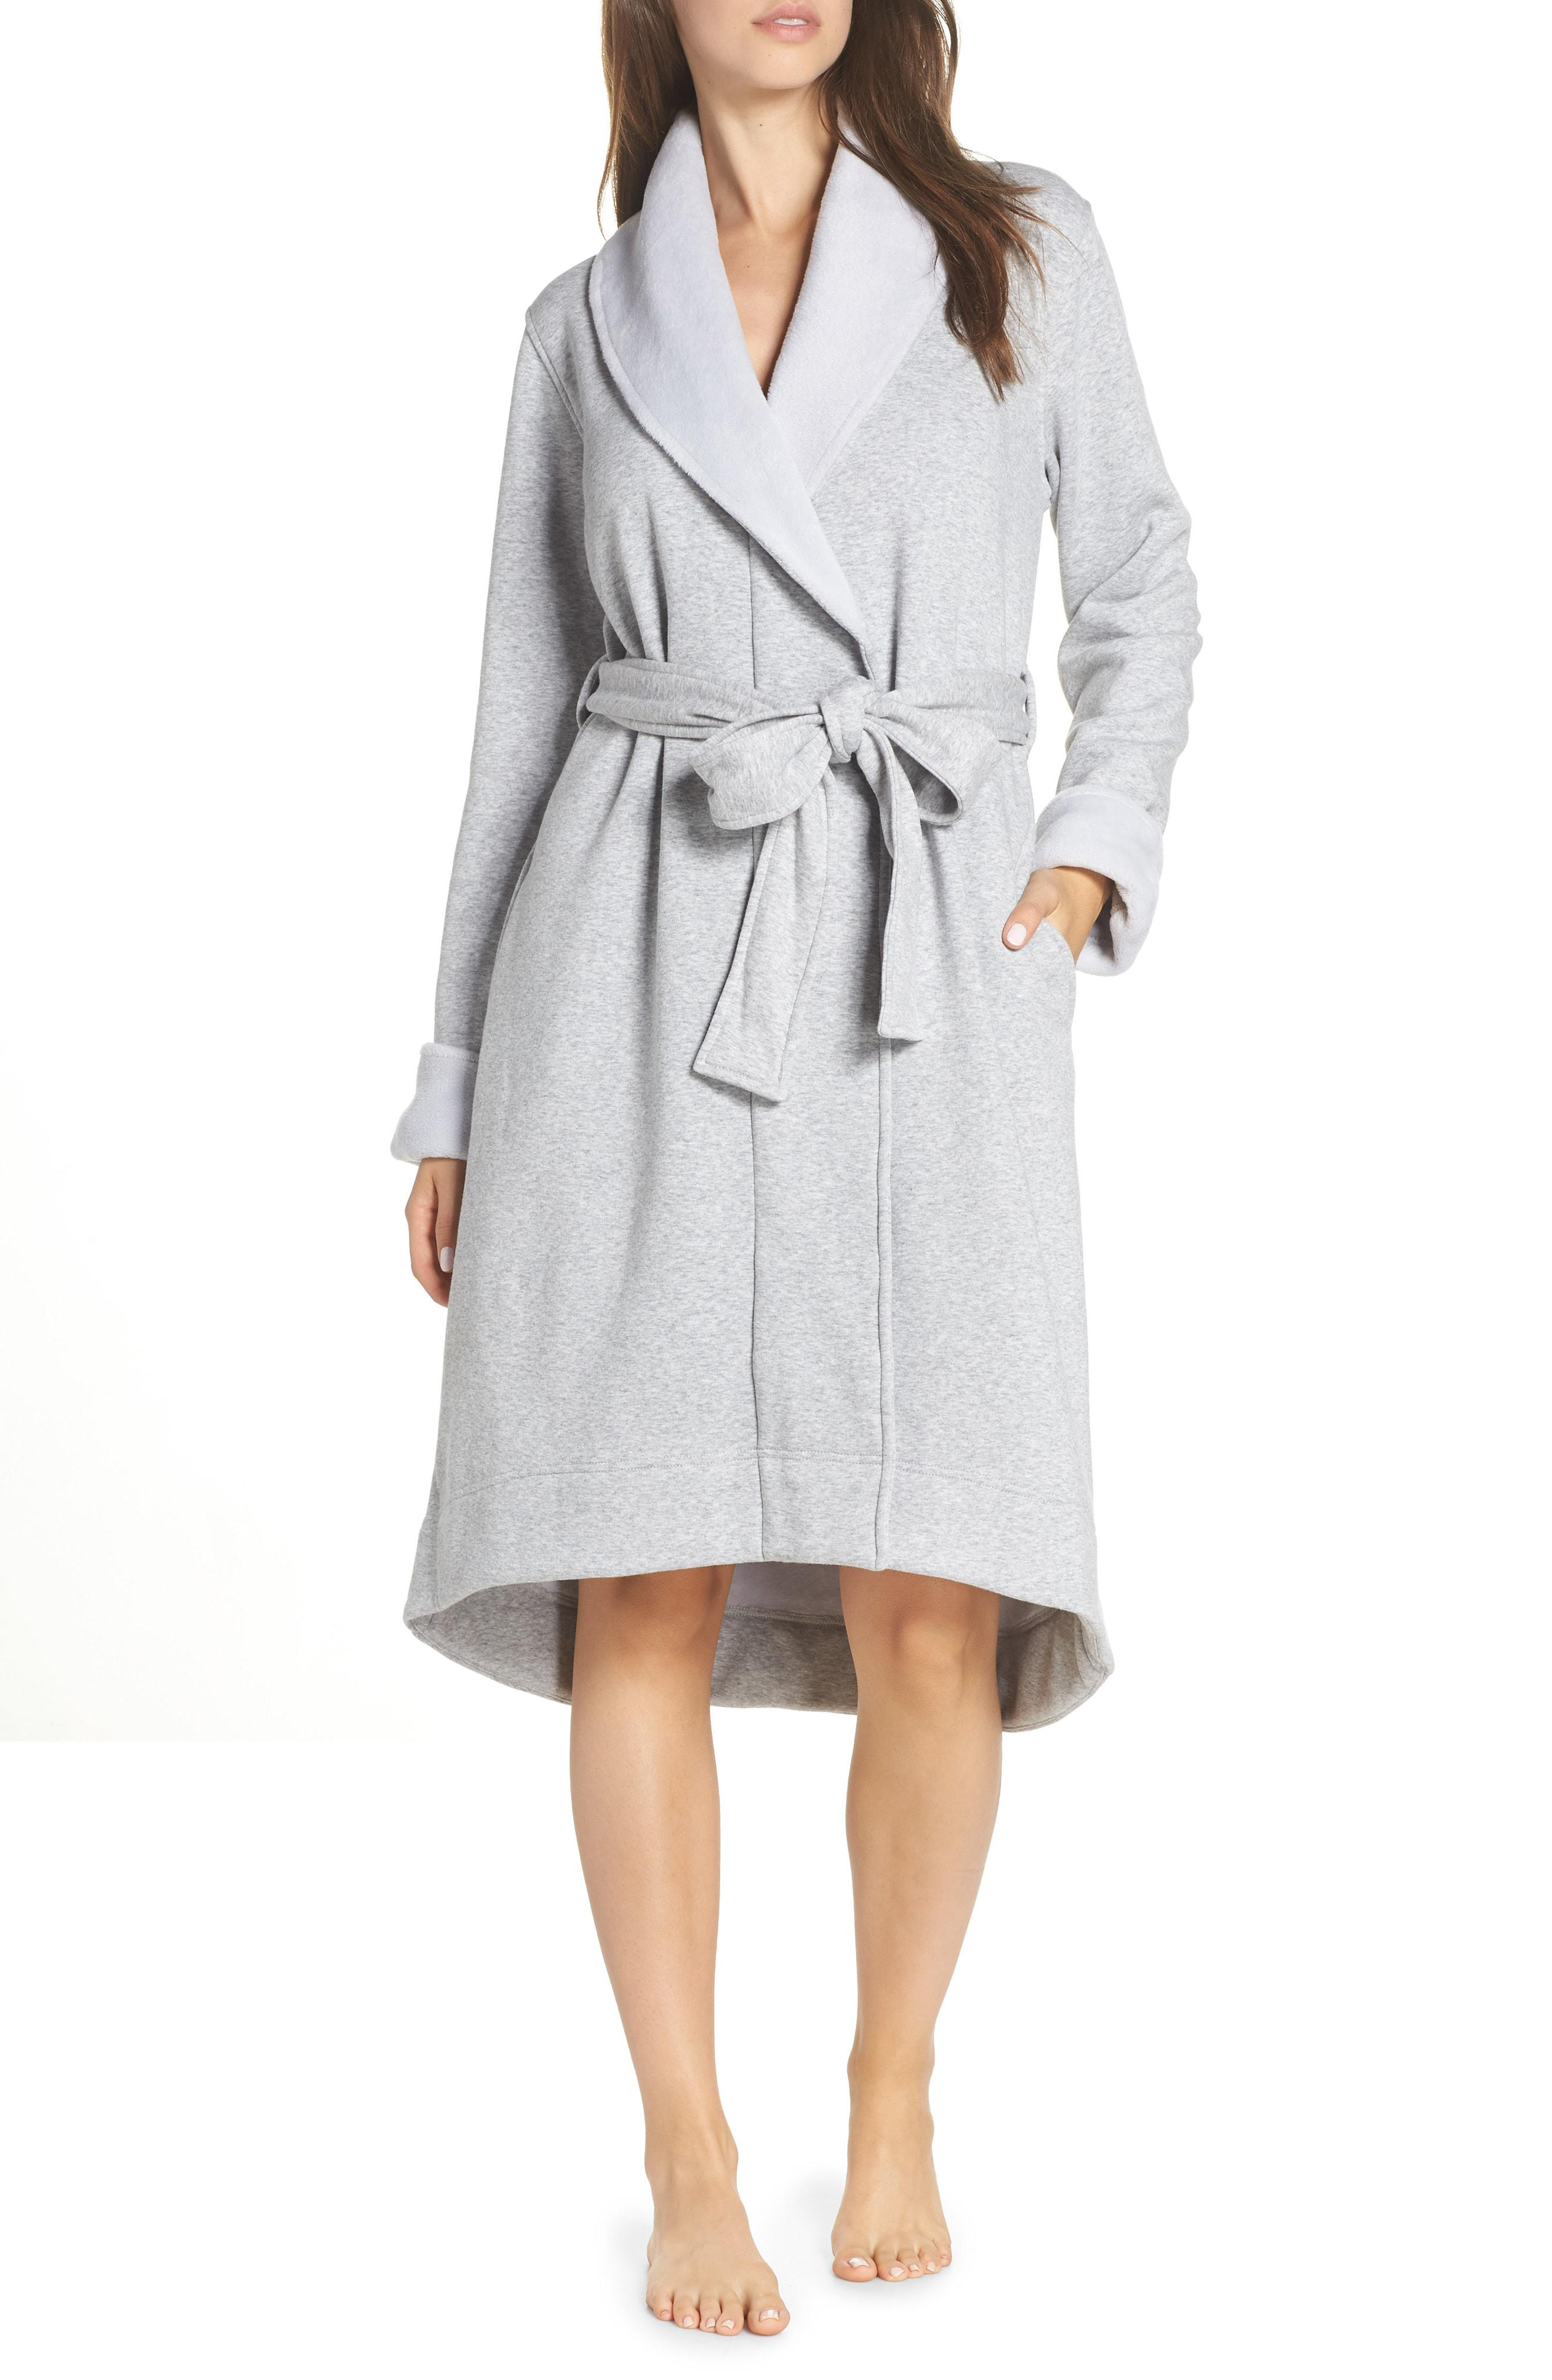 Lyst - Ugg Ugg Duffield Ii Robe in Gray 637a3cd40